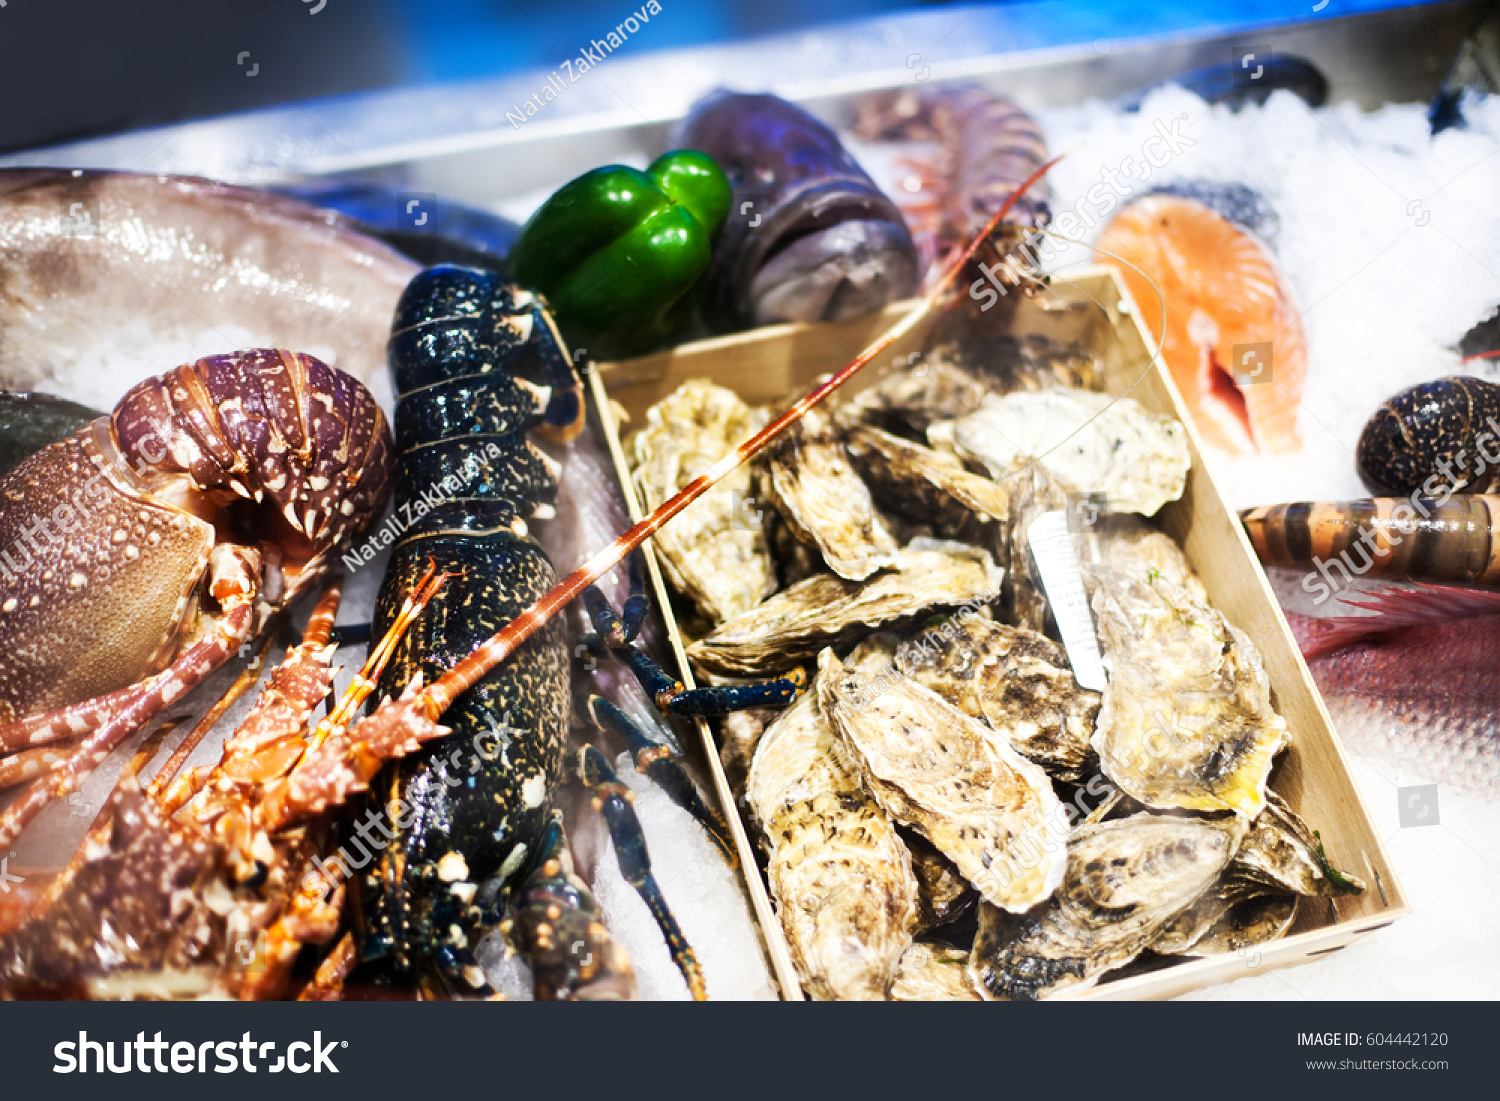 Seafood assortment on ice fish market stock photo for Seafood fish market